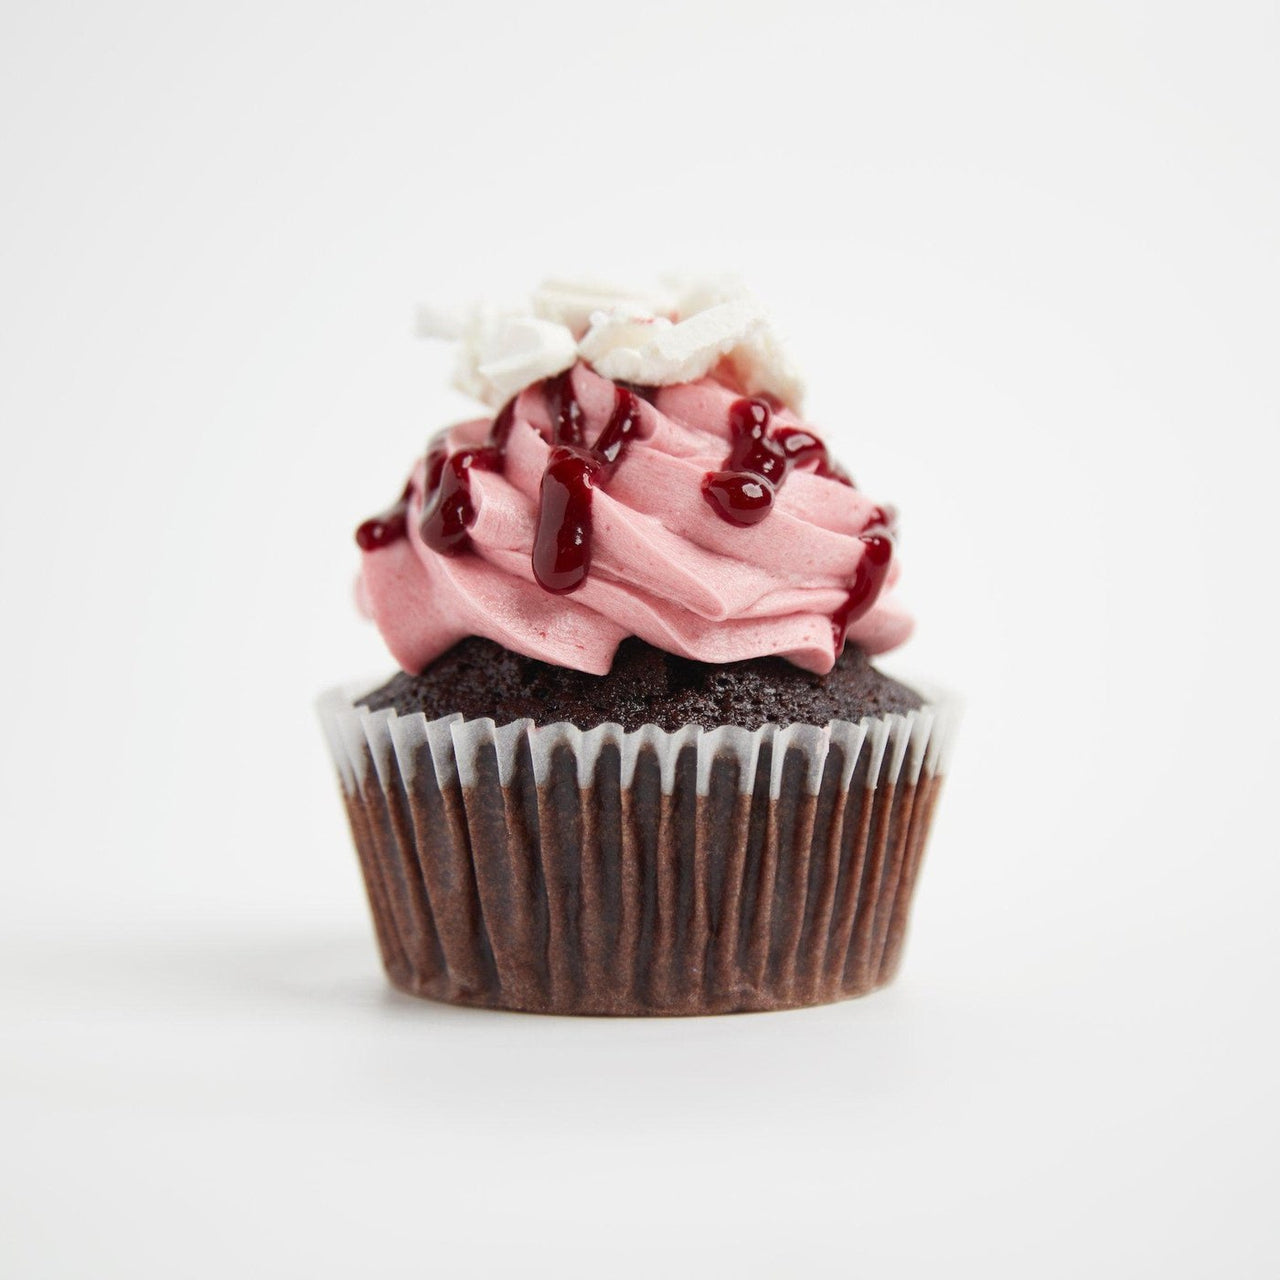 Raspberry Bombe Cupcake by Crumbs & Doilies